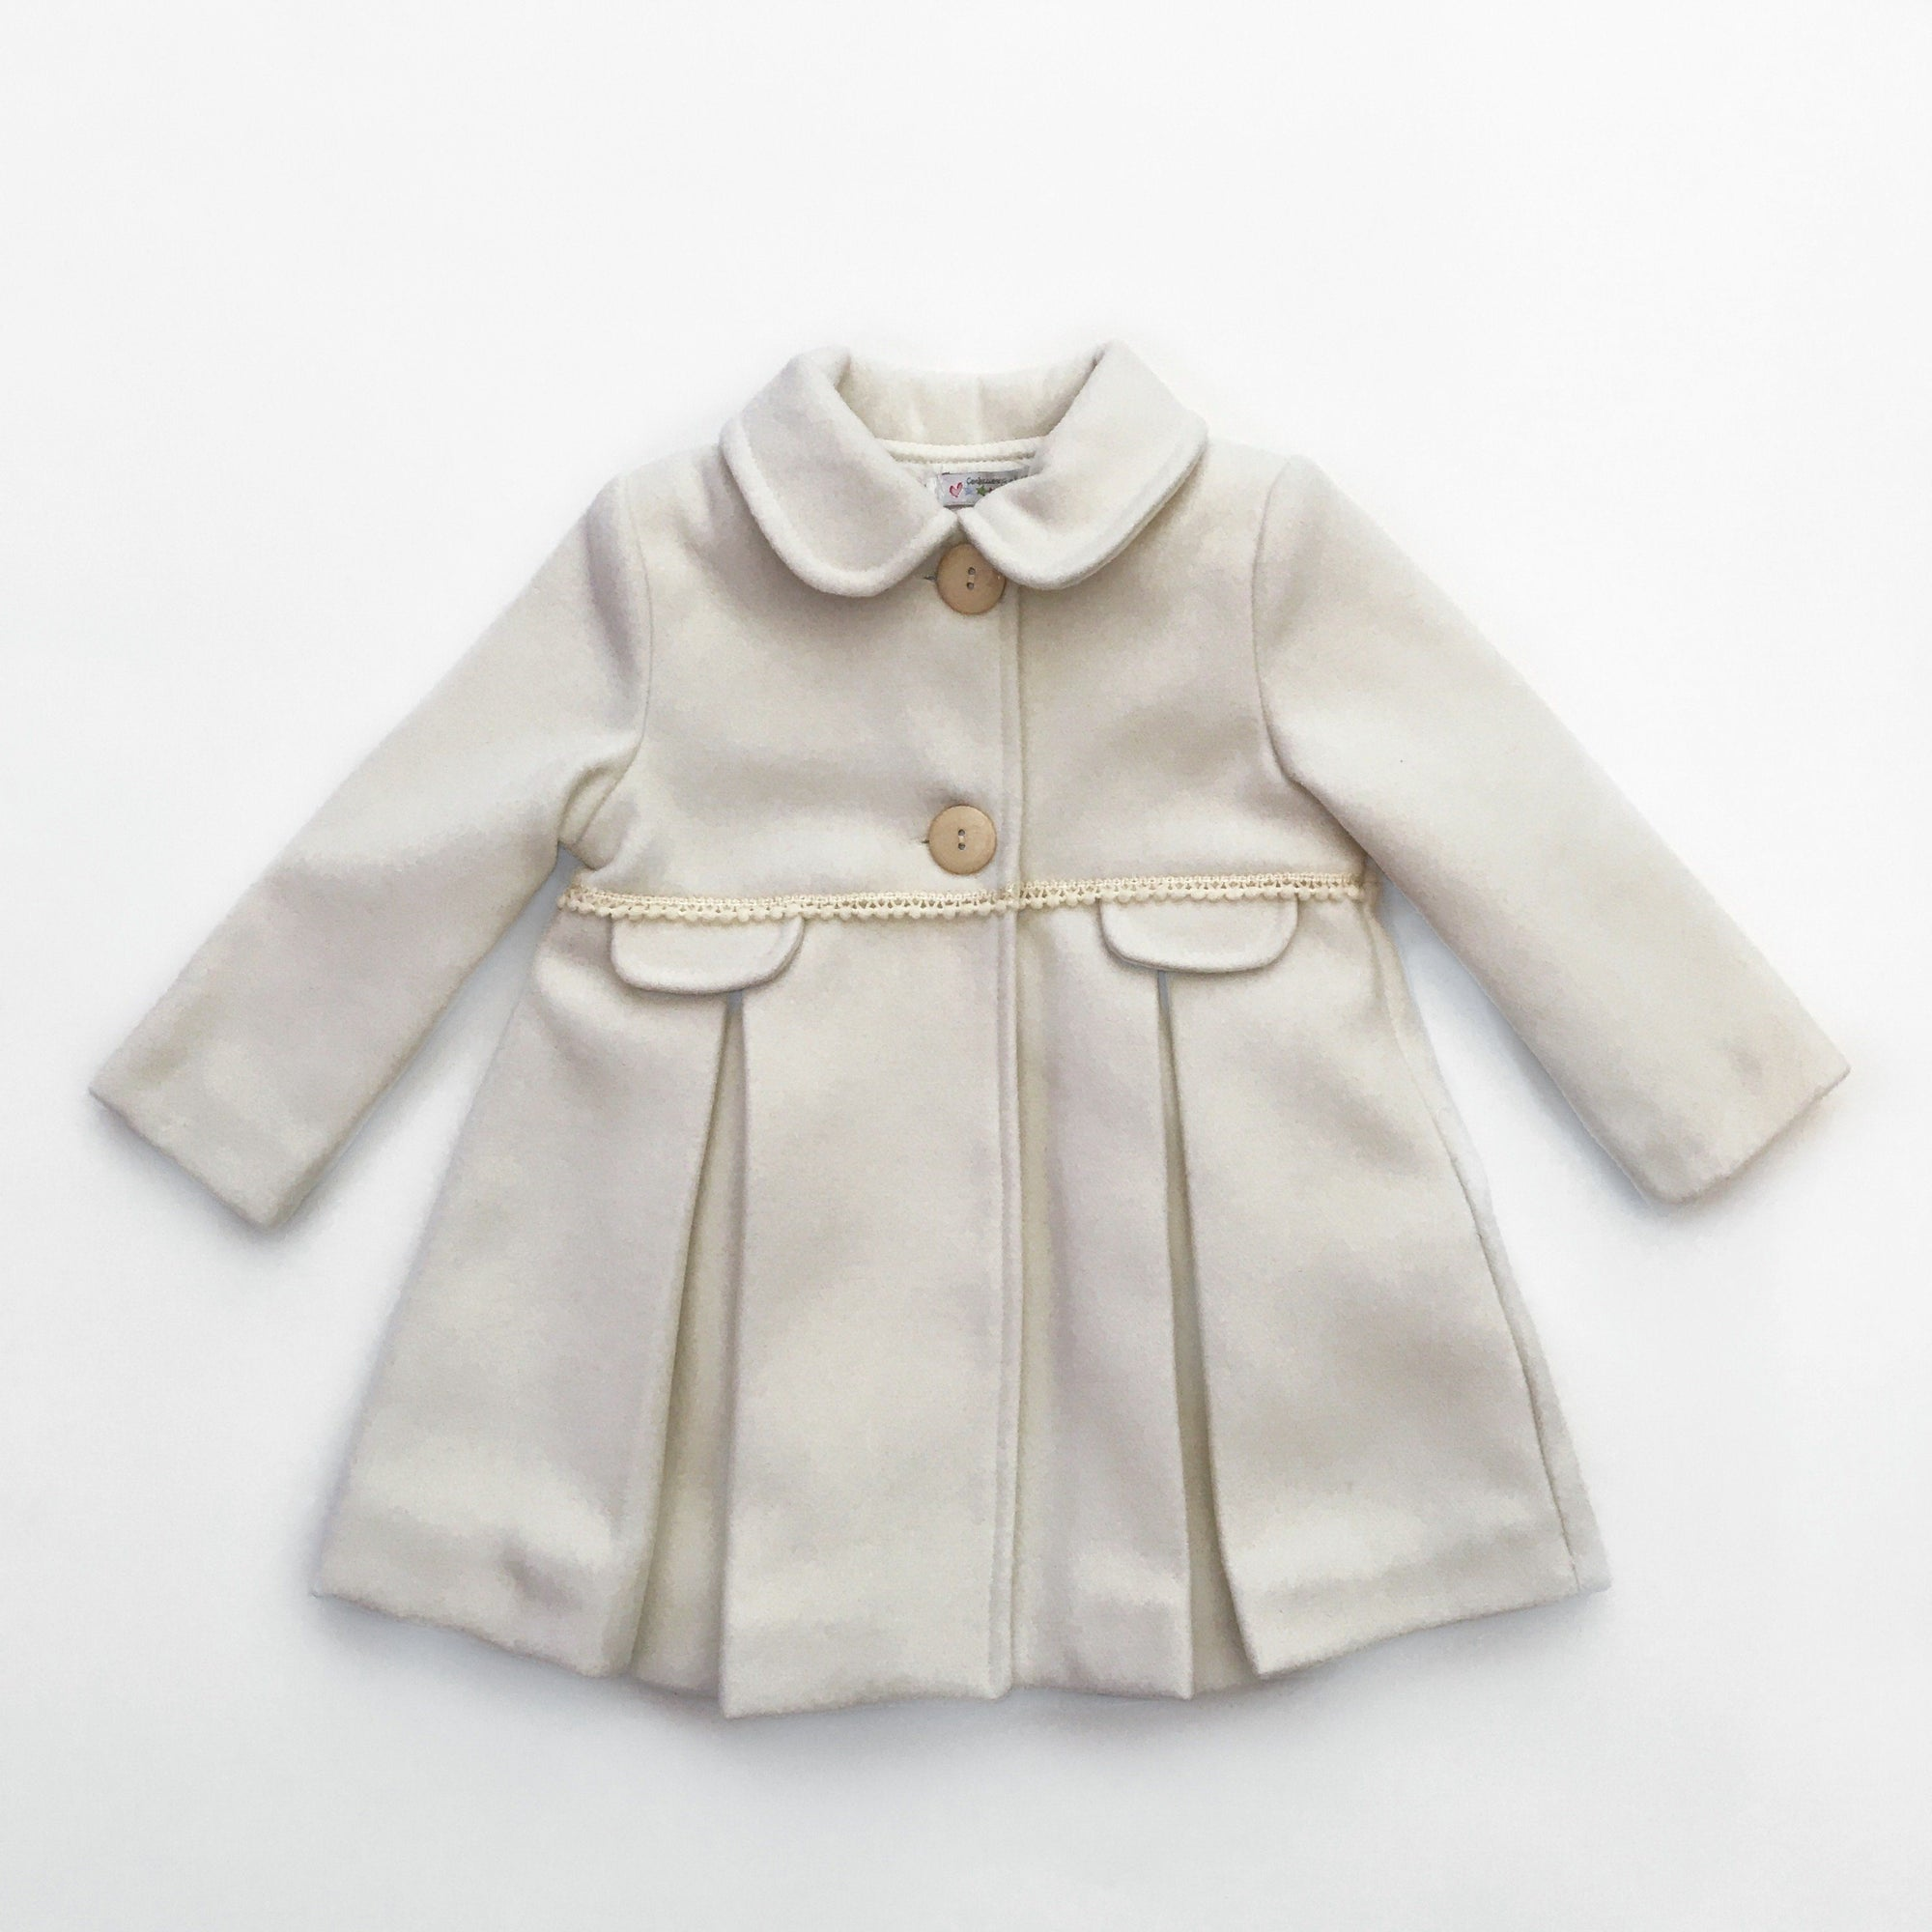 Alber Cream Pleated Braid Trim Coat | Millie and John